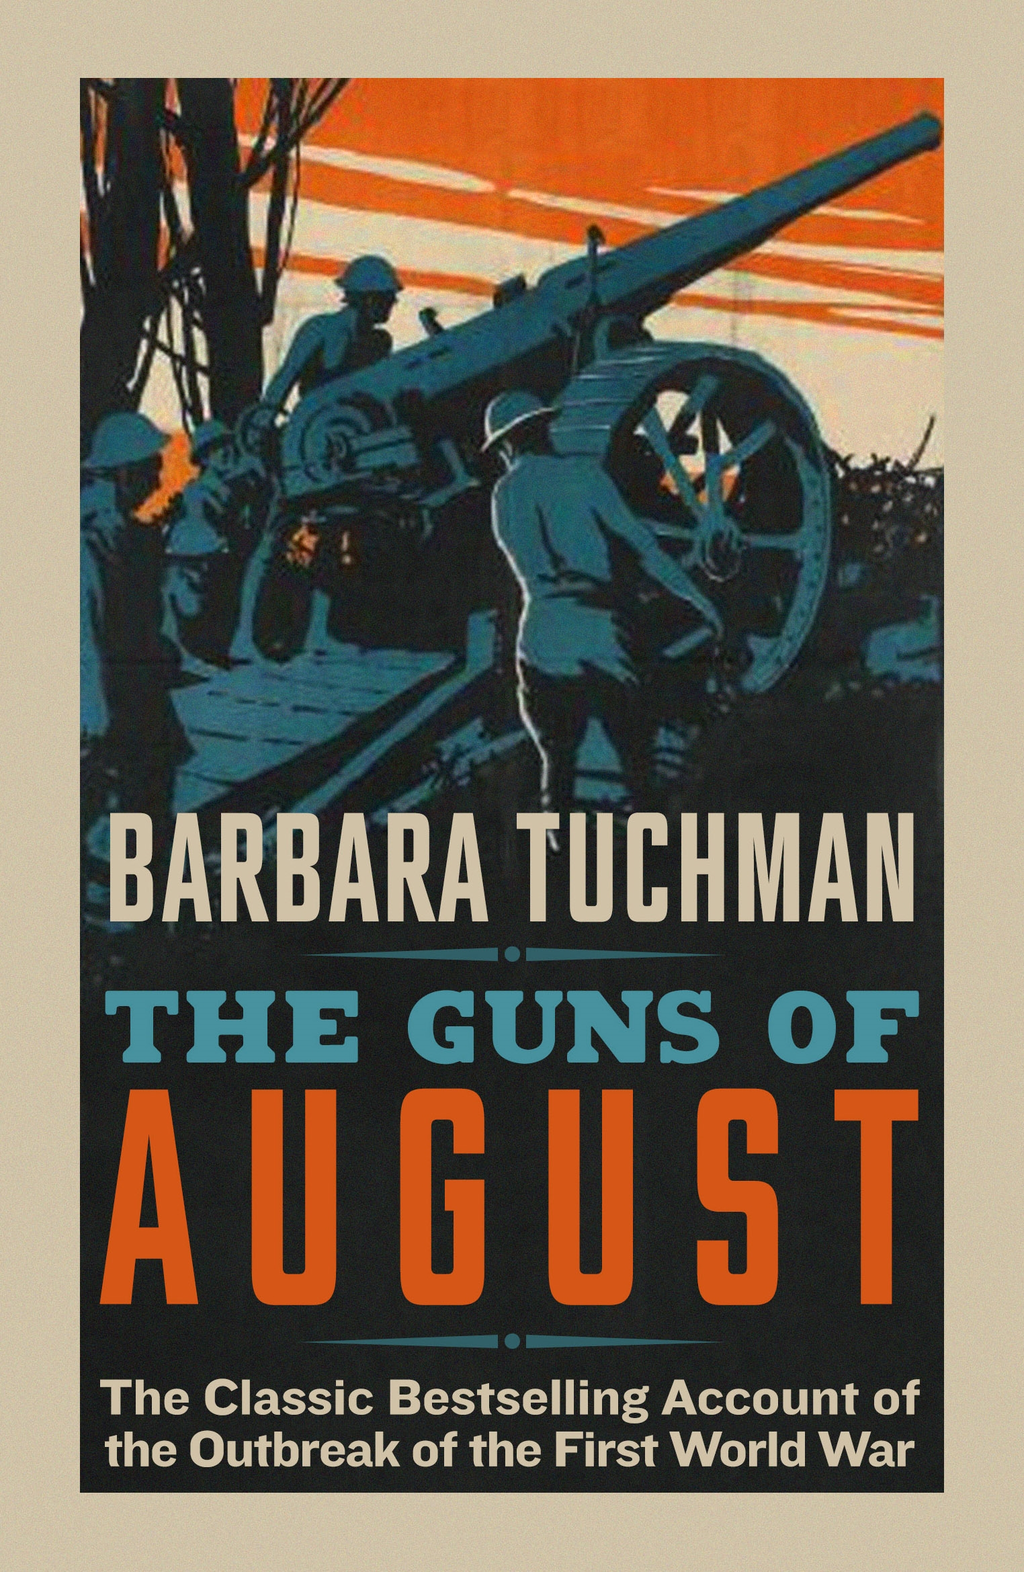 The Guns of August The Classic Bestselling Account of the Outbreak of the First World War